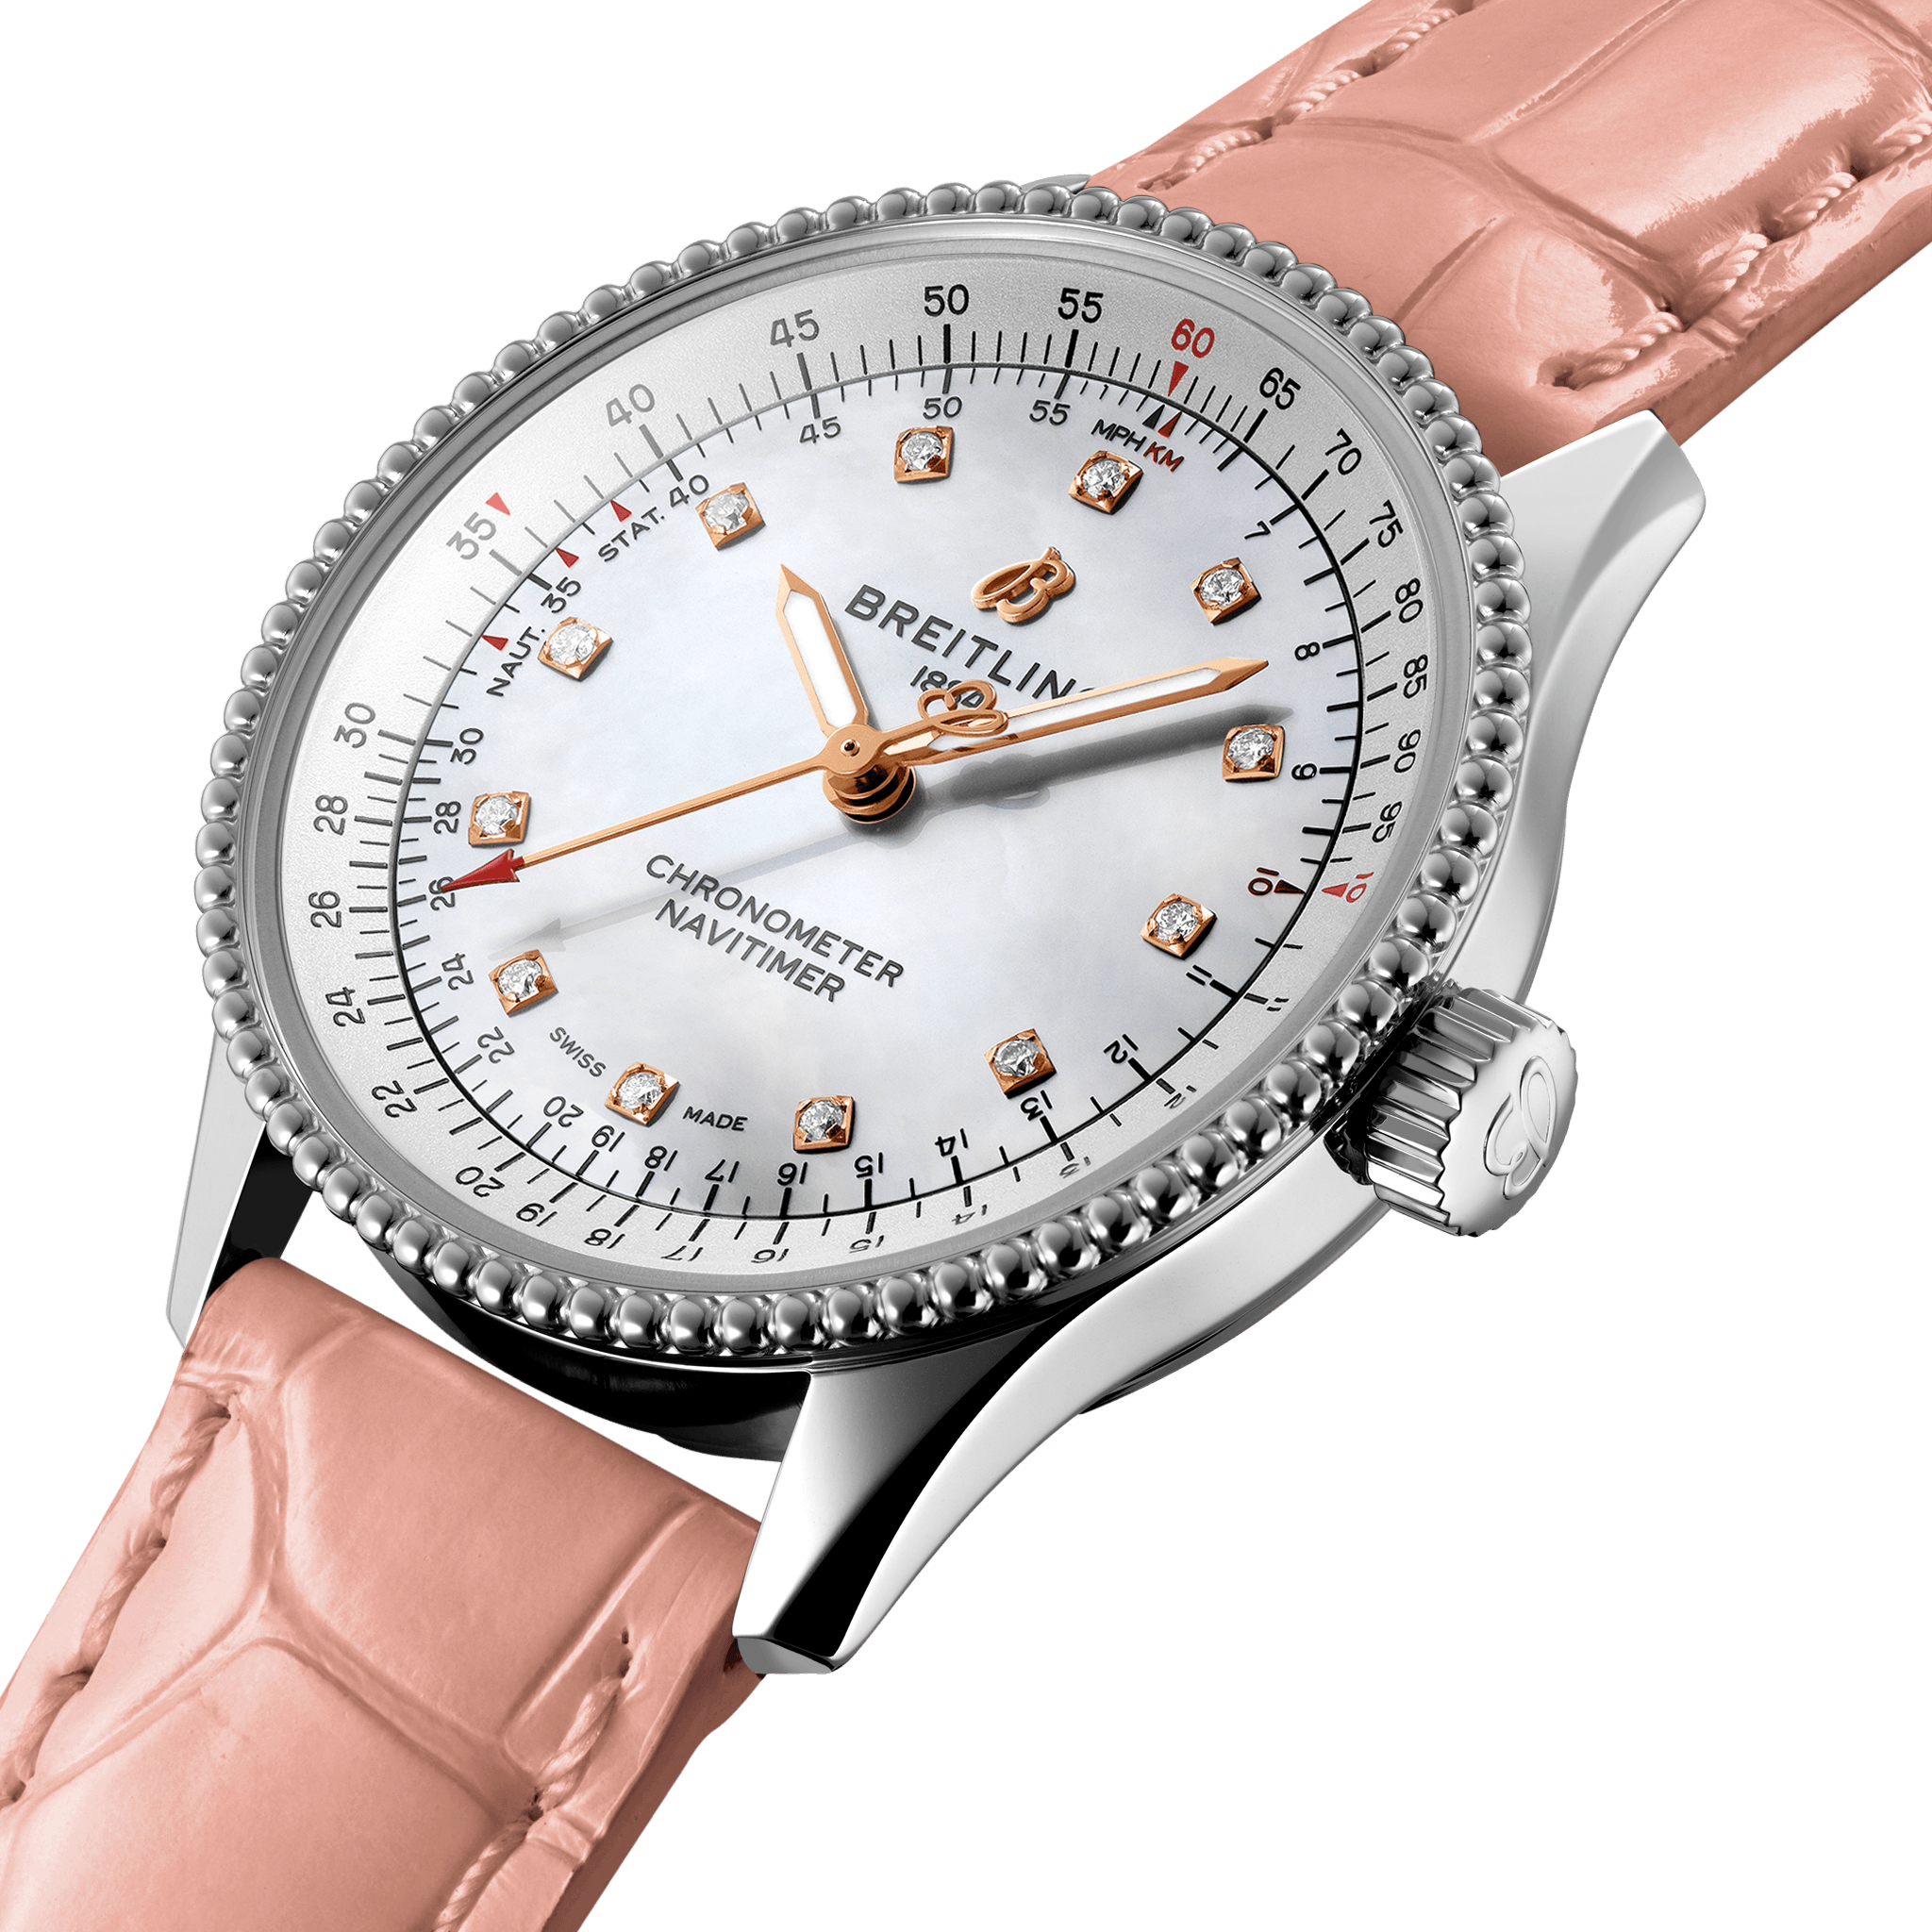 A17395211A1P4 Breitling BREITLING Navitimer Automatic 35